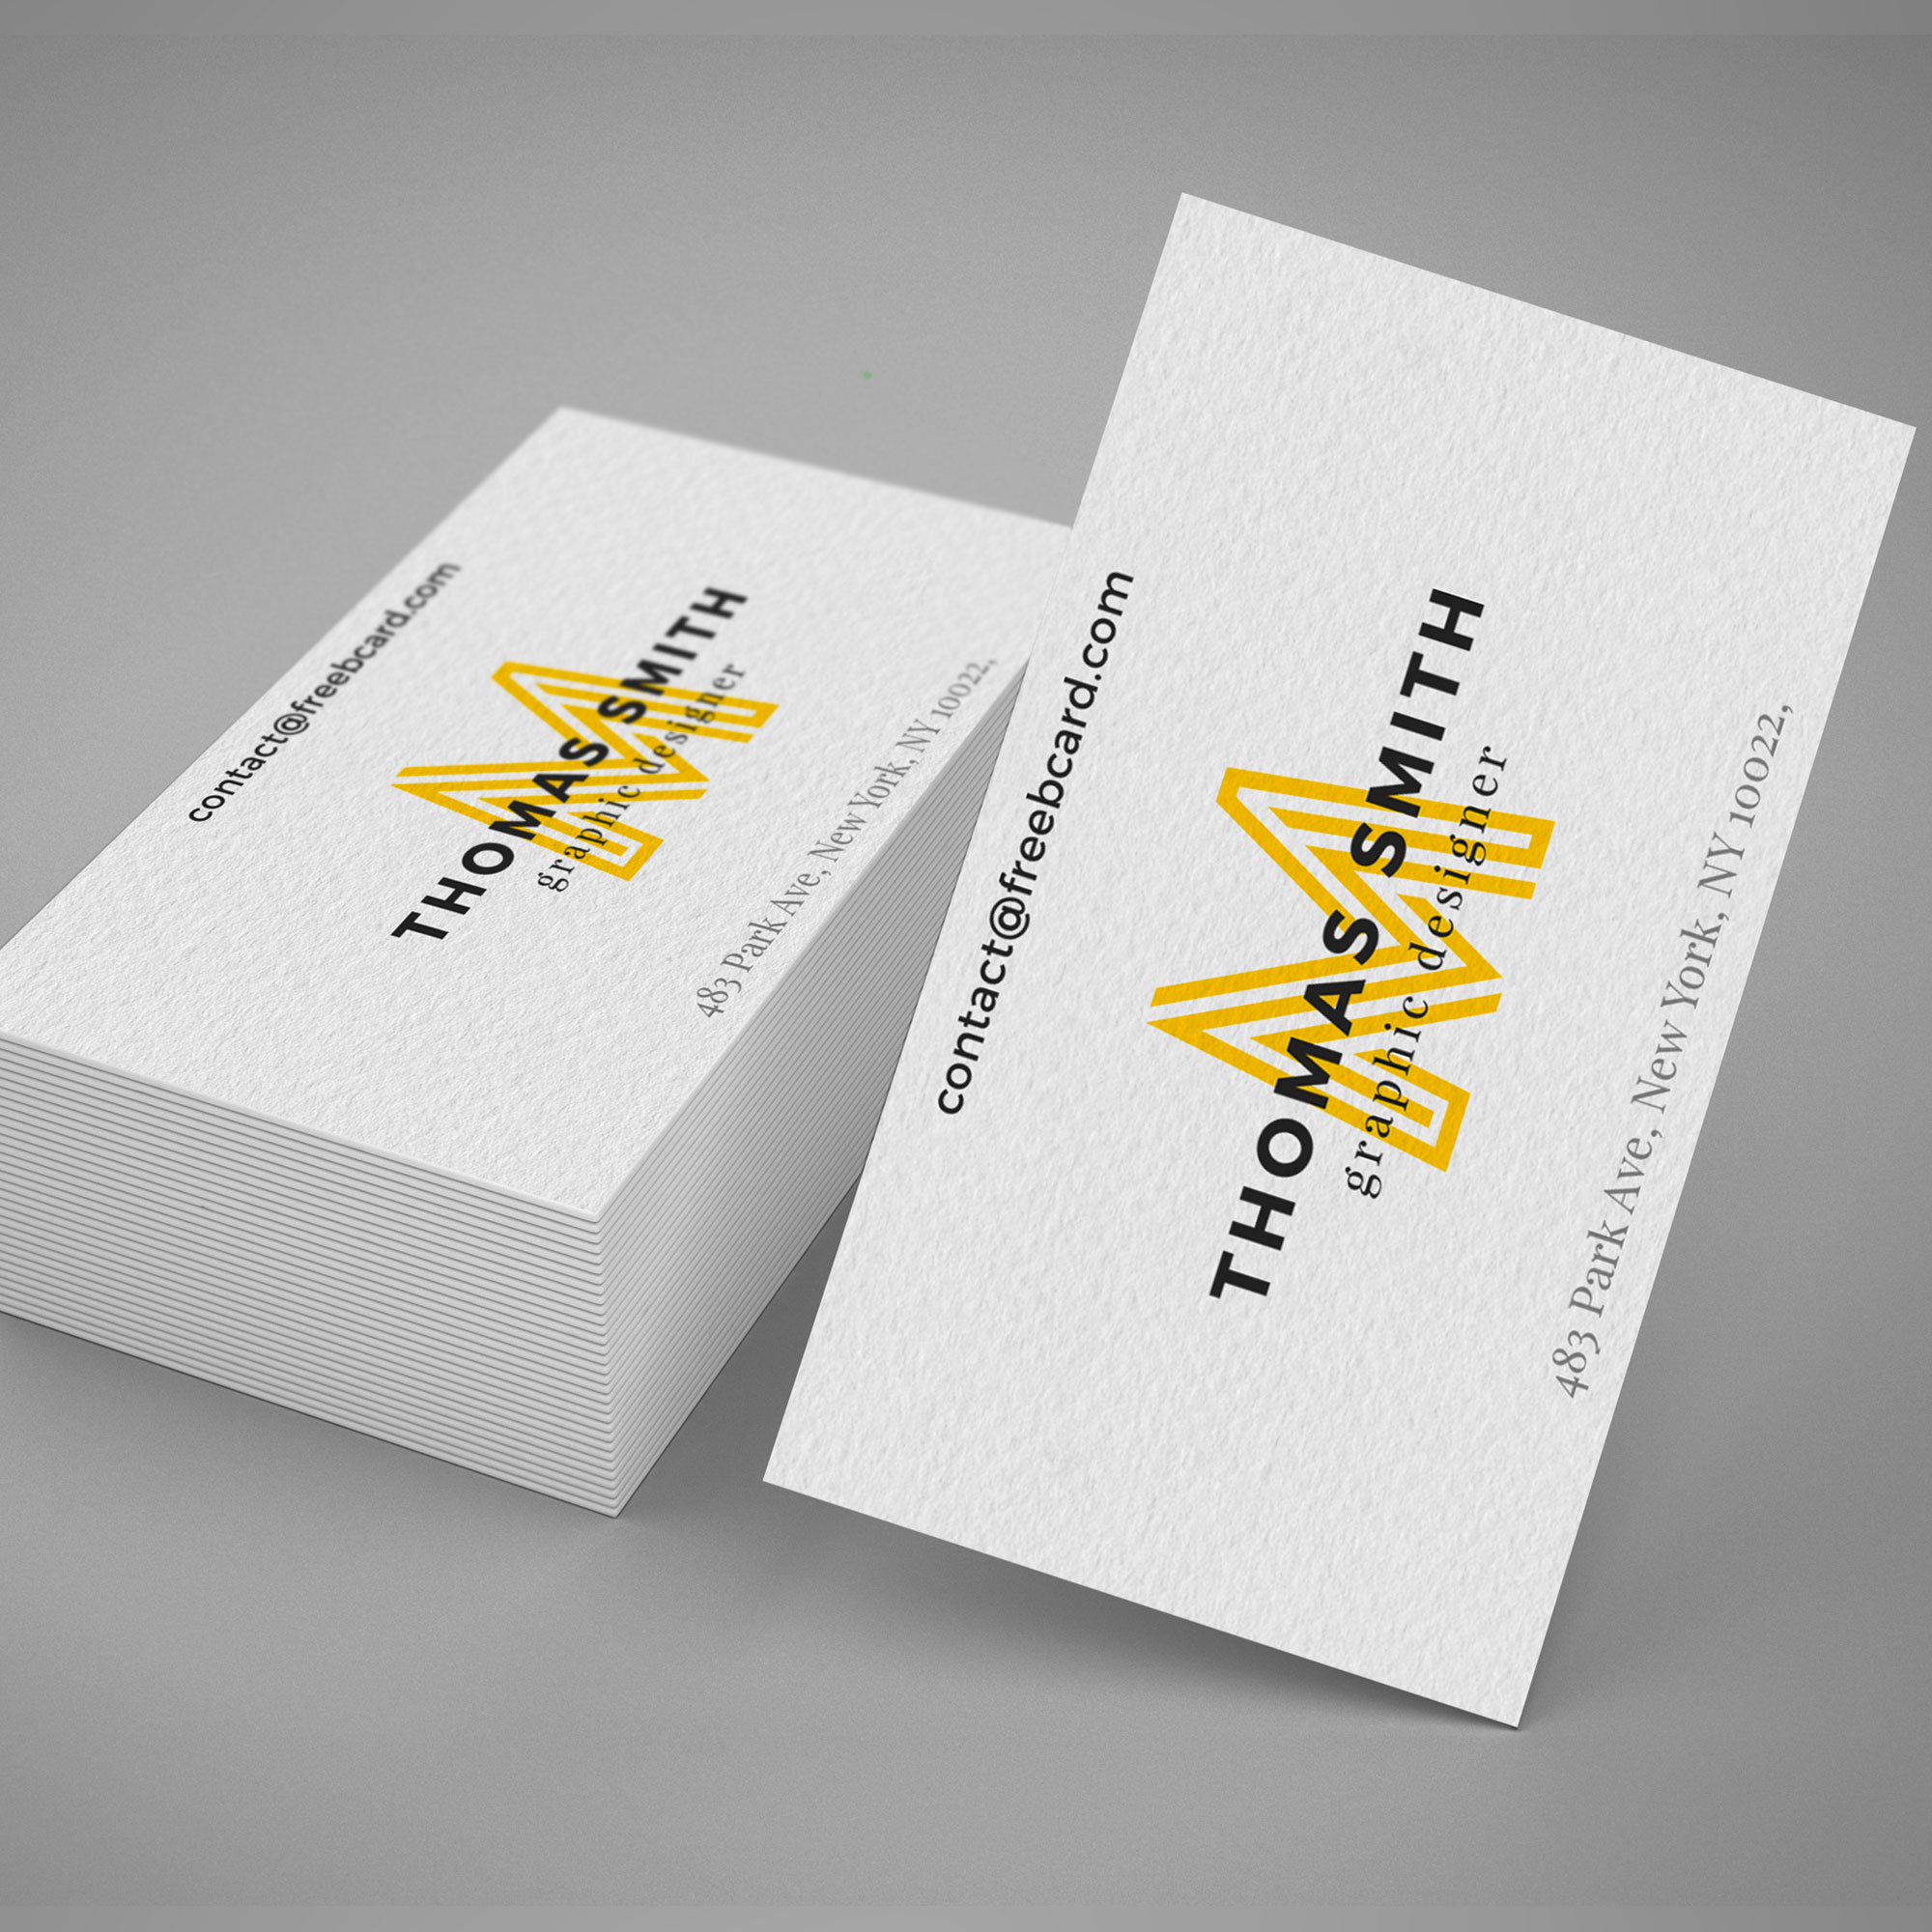 Realistisch Business Card mockup